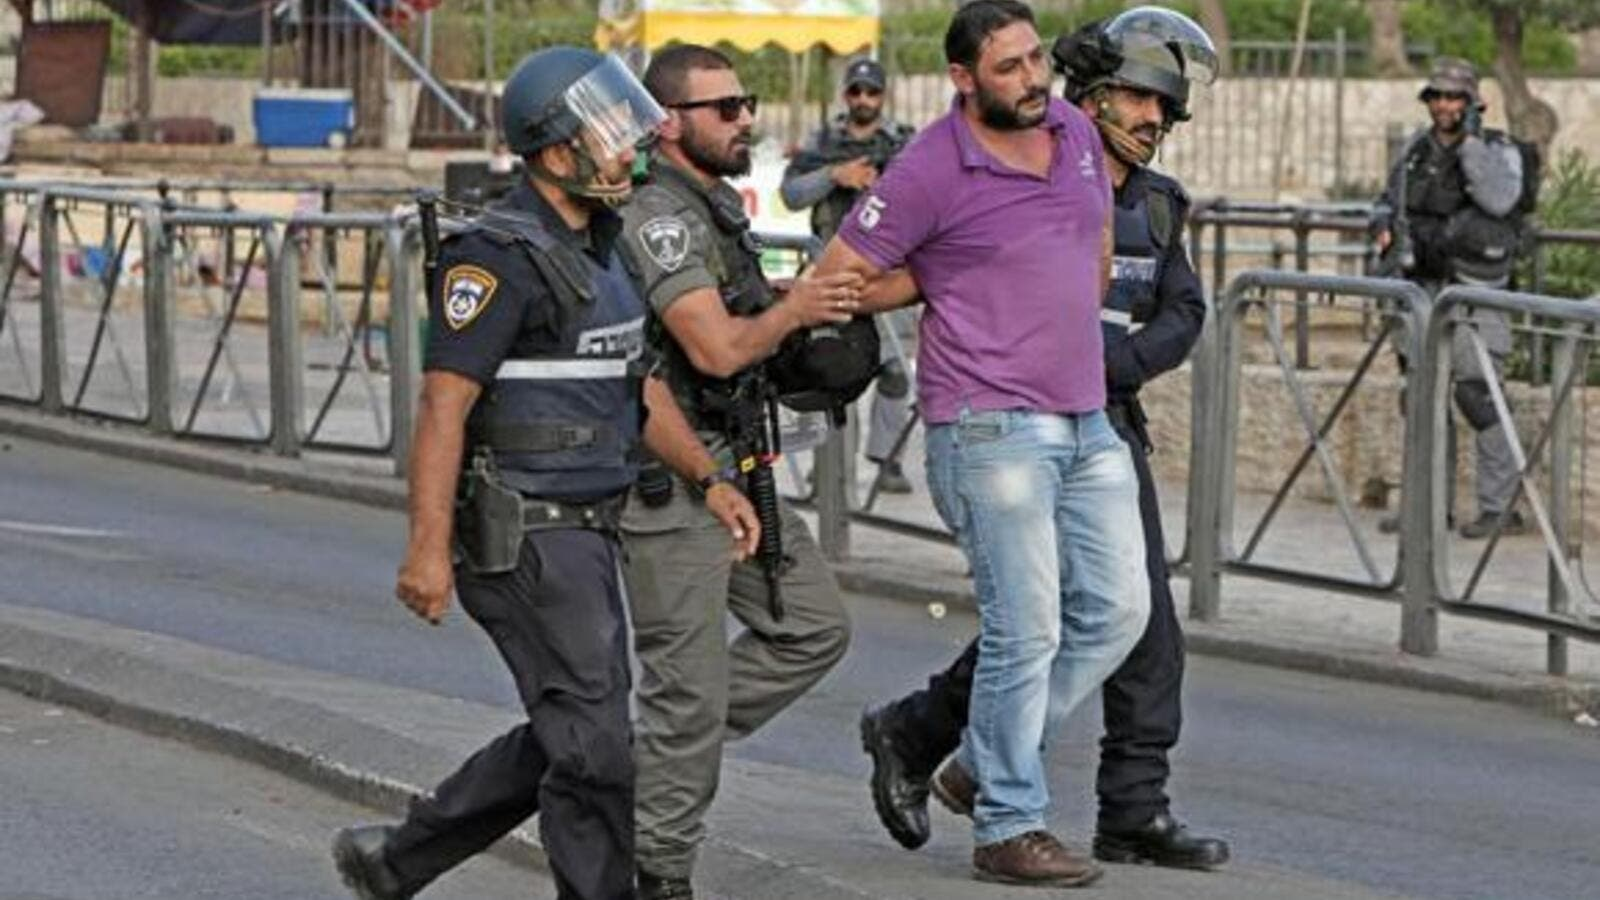 Israeli policemen detain a Palestinian, at the site where two Israeli police officers were stabbed. (AFP/File)